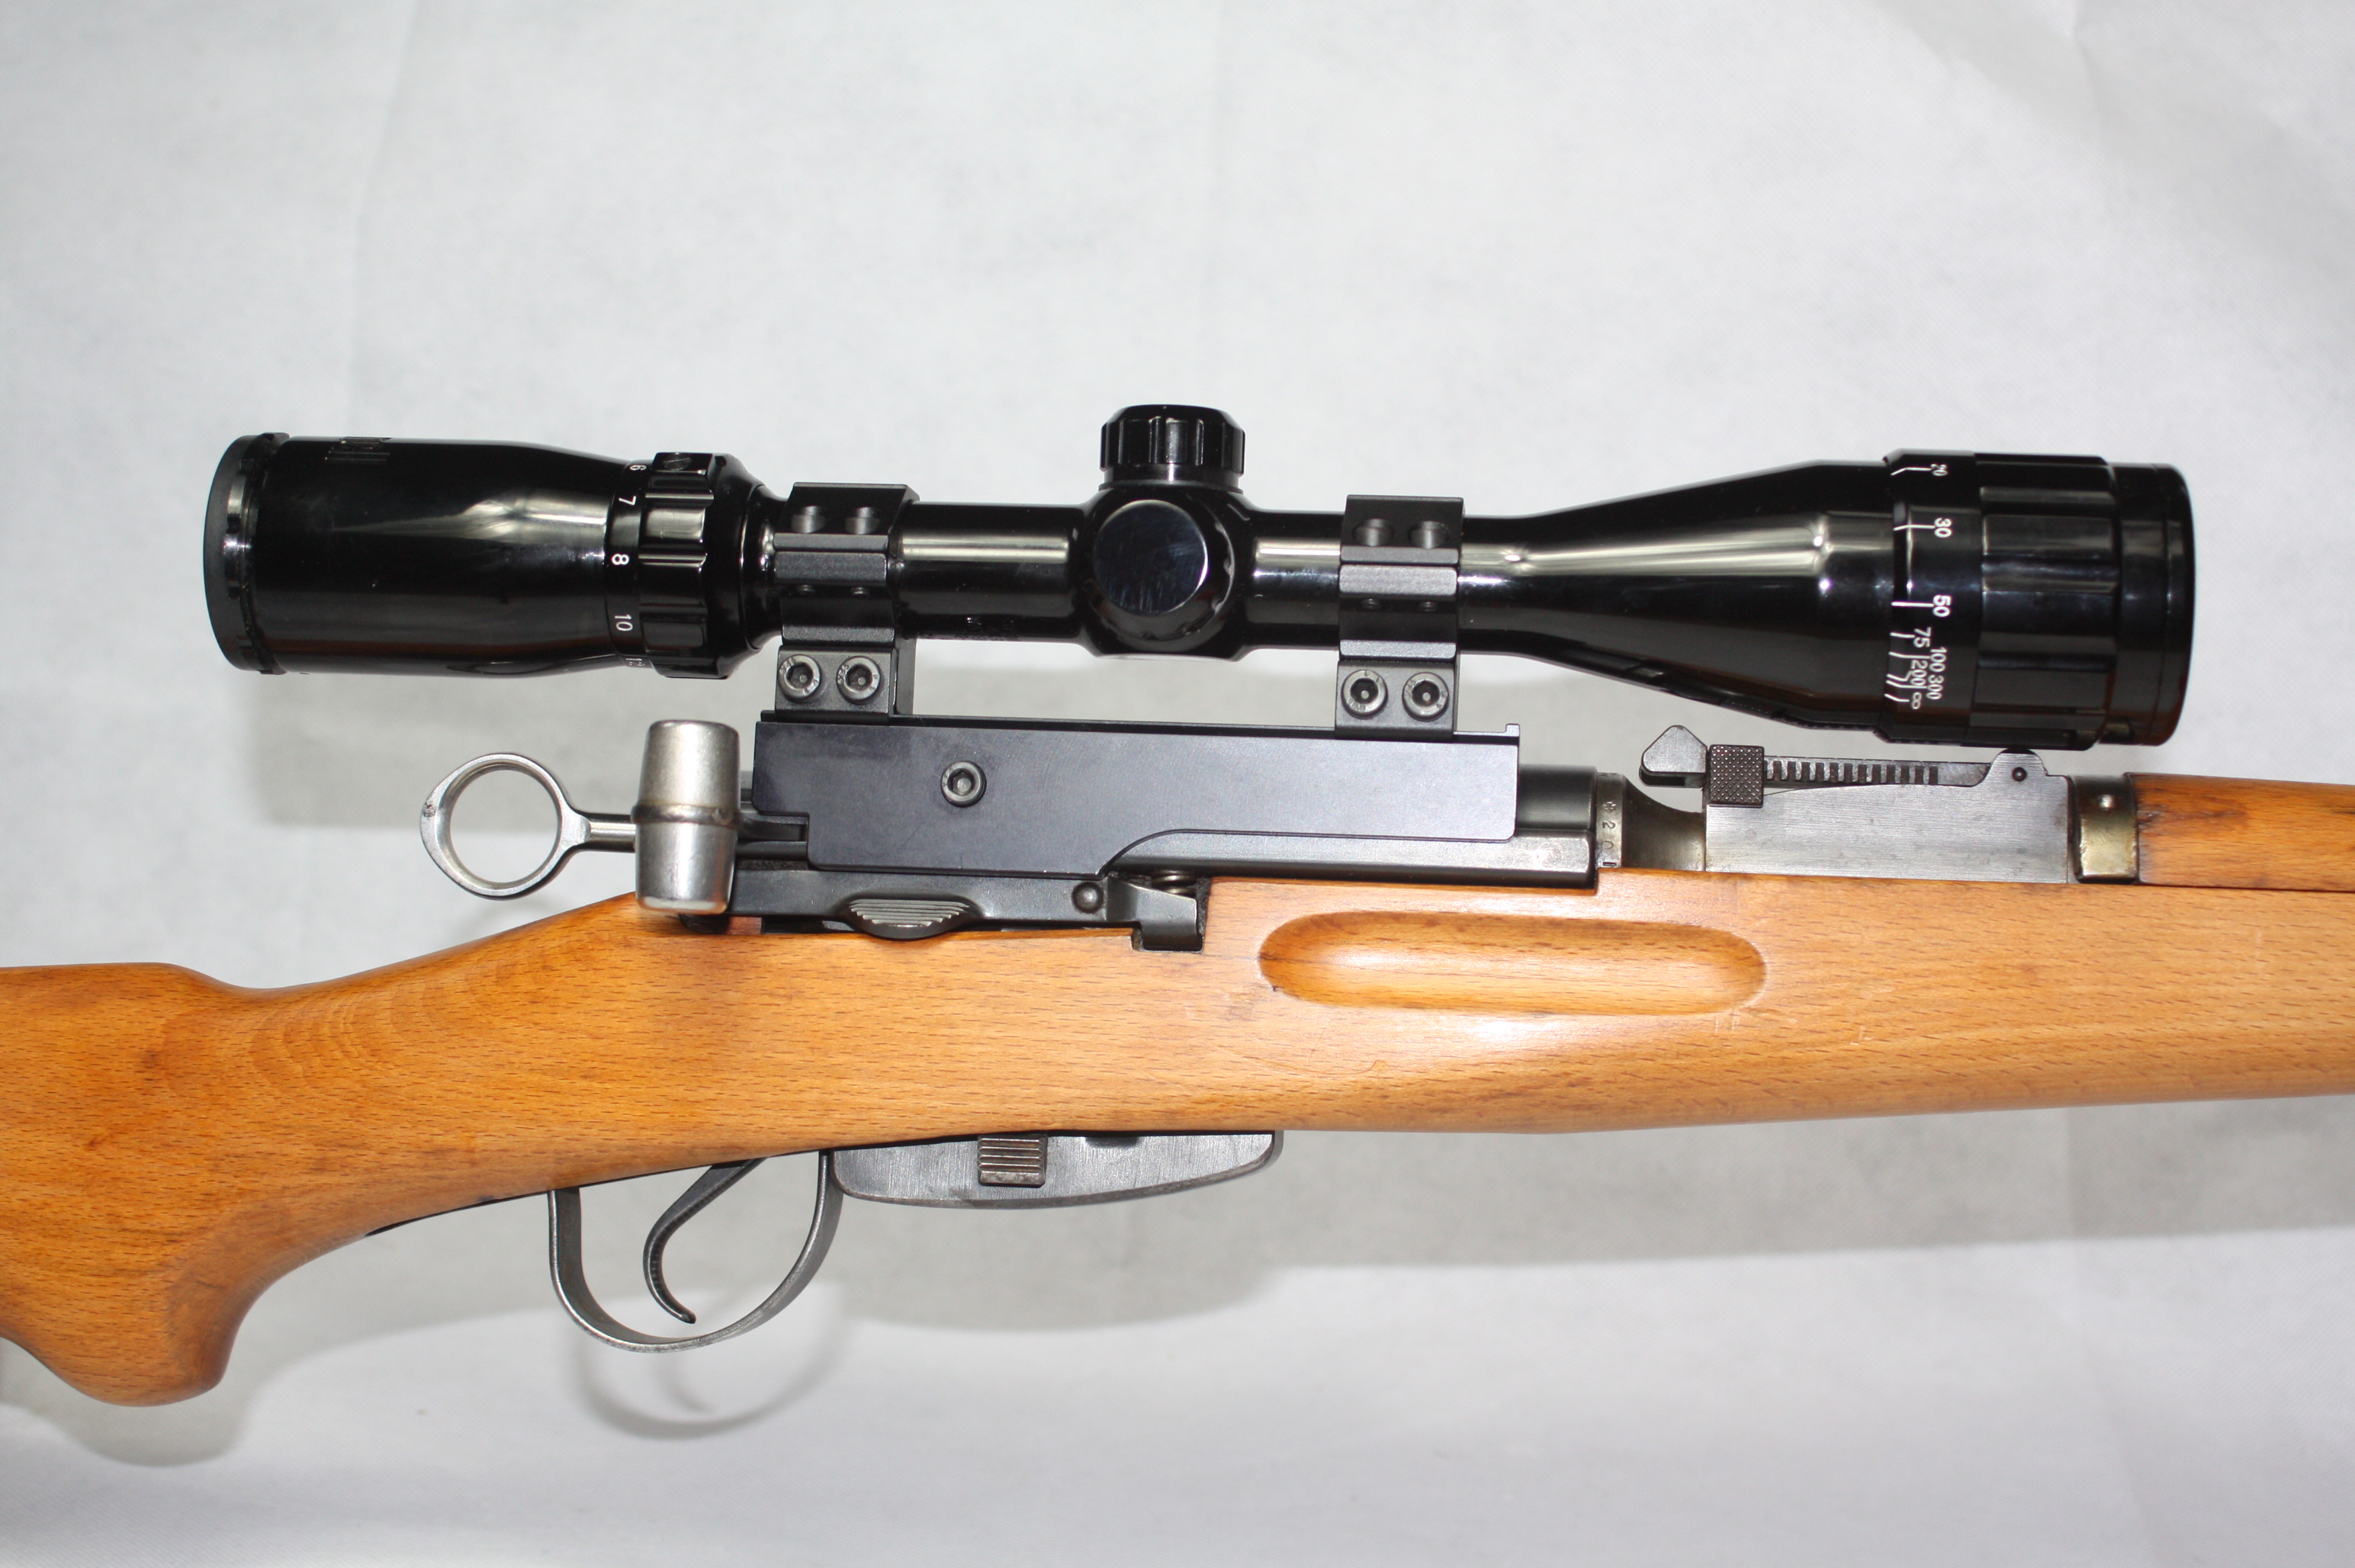 SWISS 7.5X55mm 'SCHMIDT RUBIN' STRAIGHT Pull K31 SERVICE RIFLE with scope